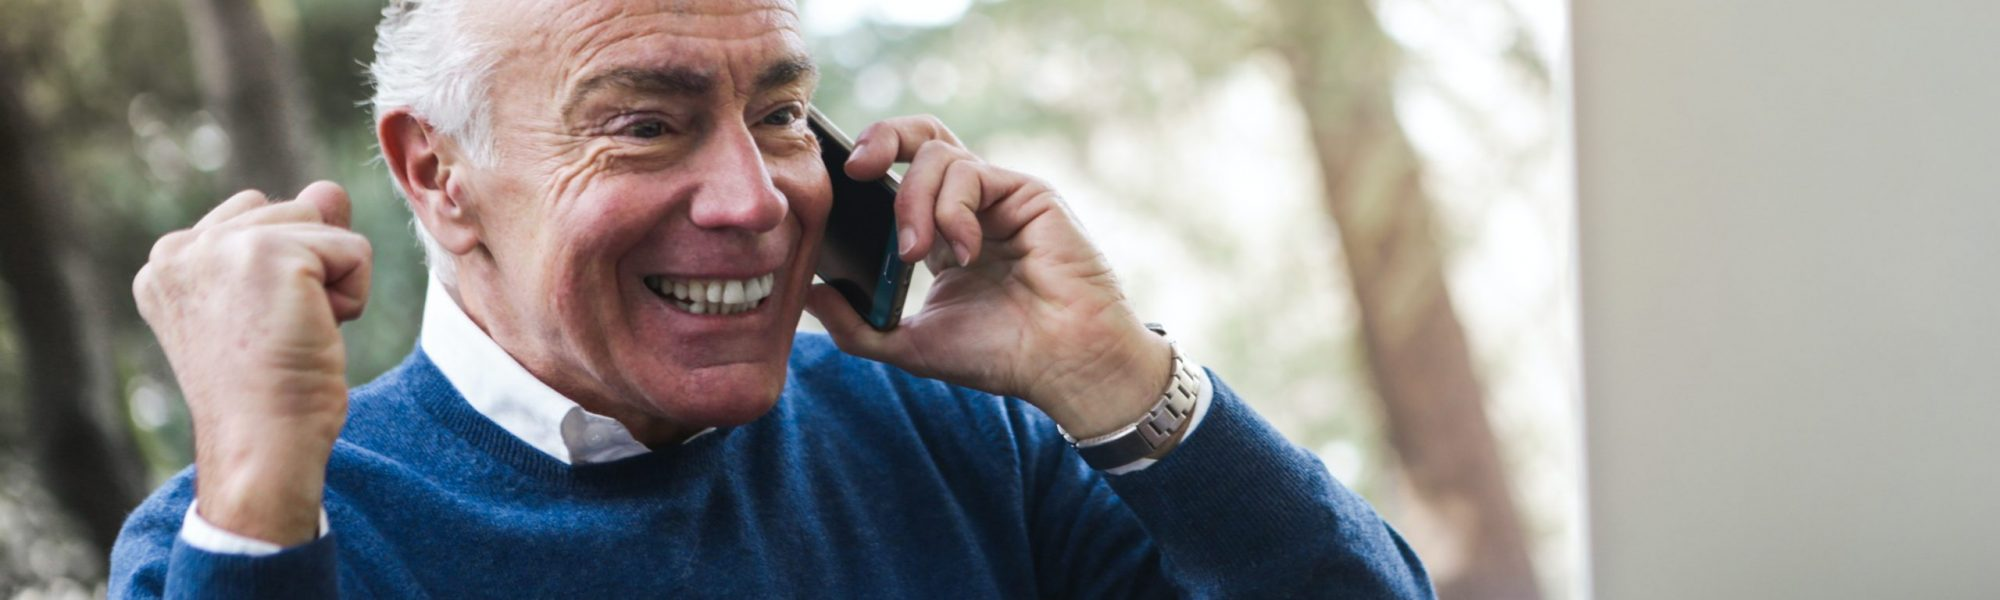 selective-focus-photo-of-excited-elderly-man-in-blue-sweater-3754684